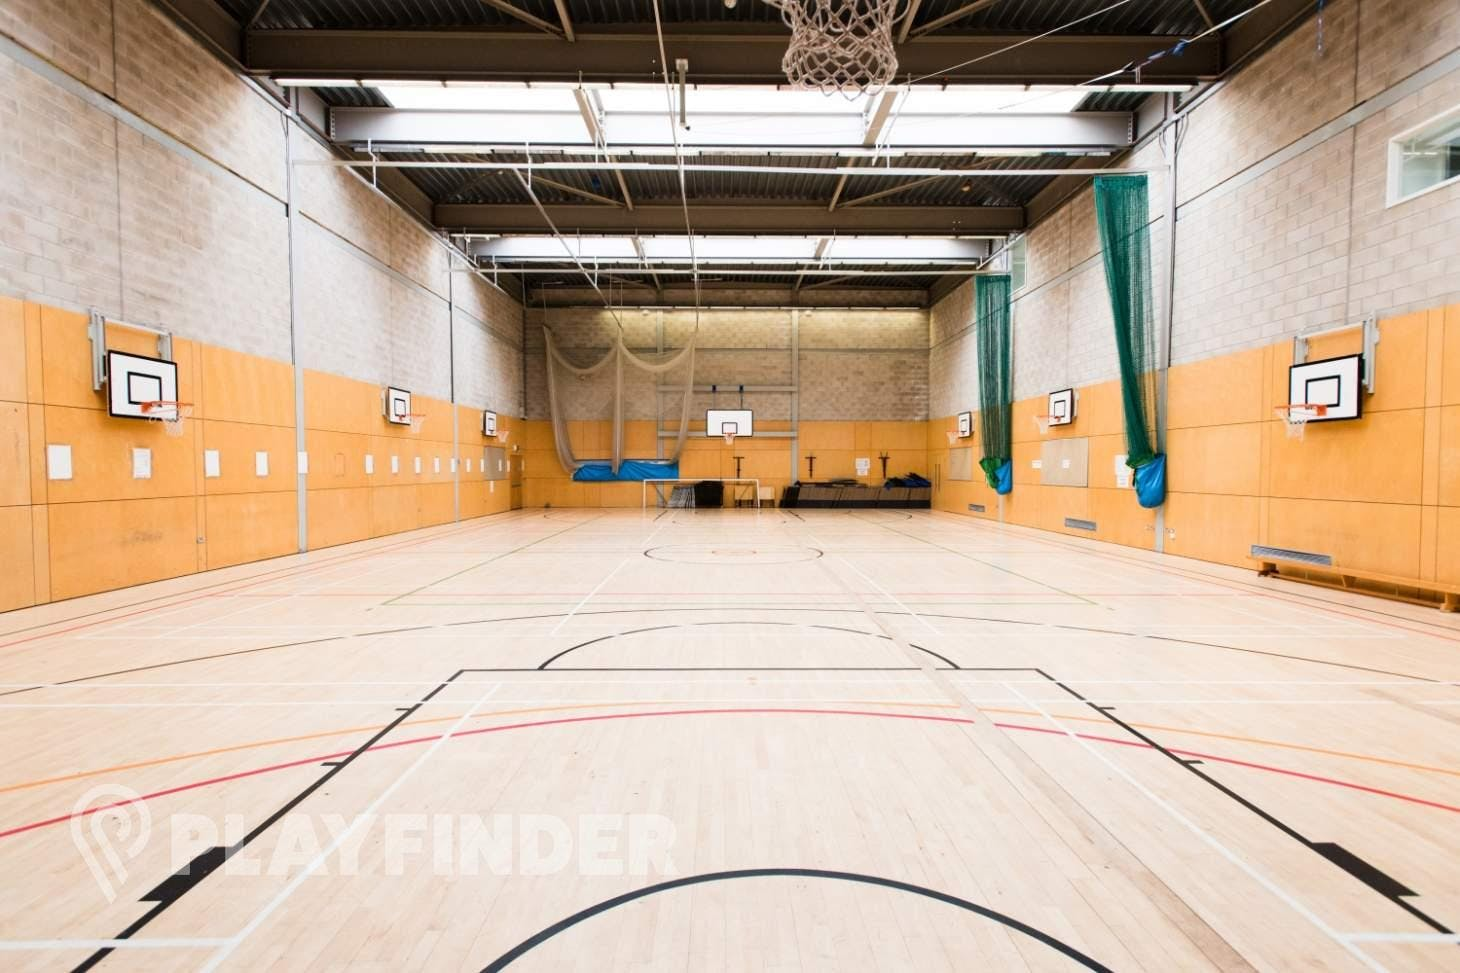 Basketball Court Hire In London Basketball Courts Near Me Playfinder